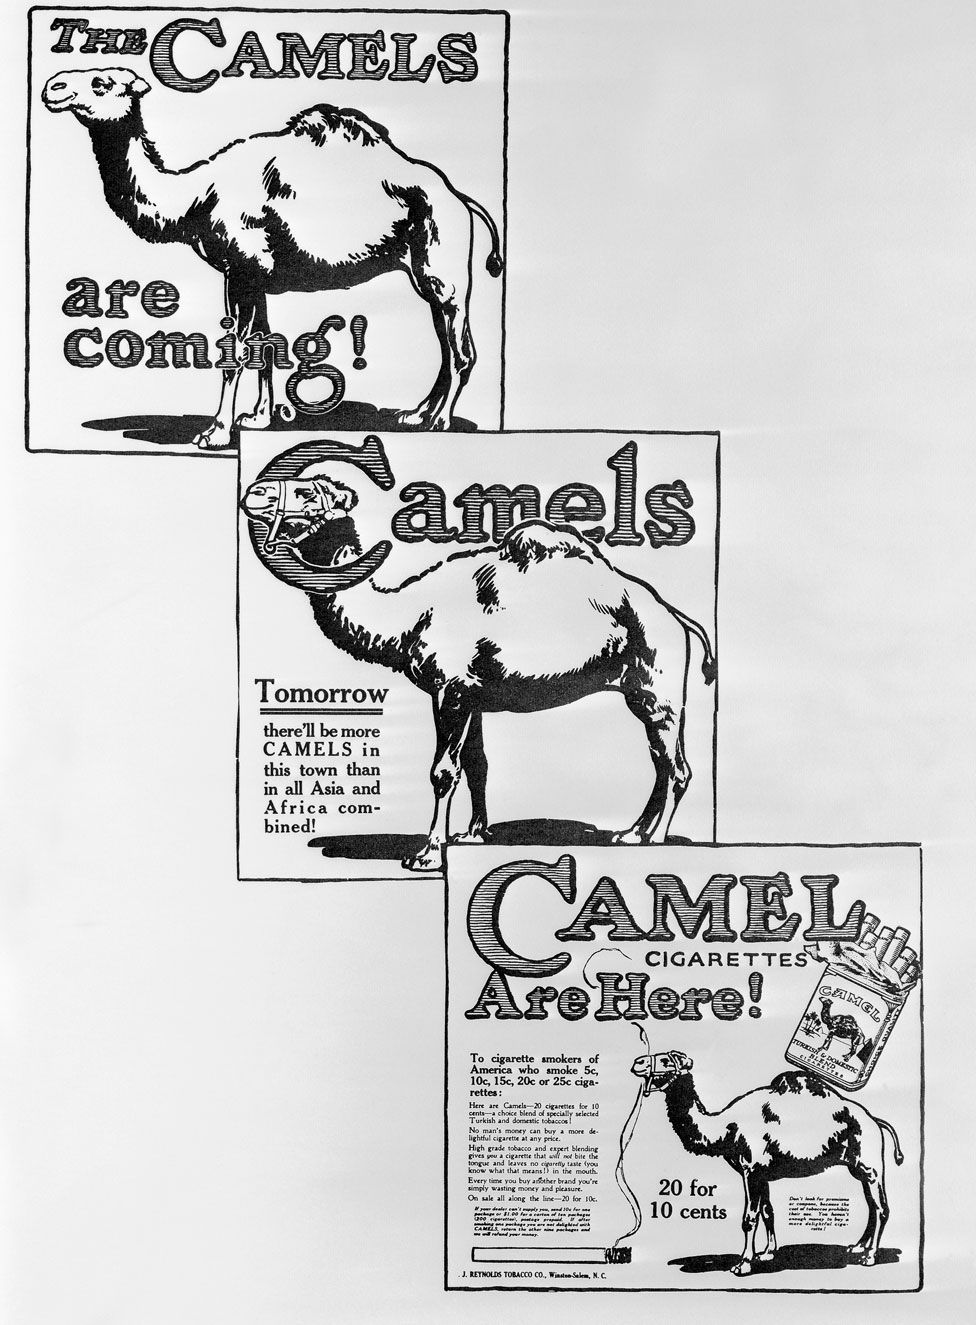 A series of adverts for Camel cigarettes